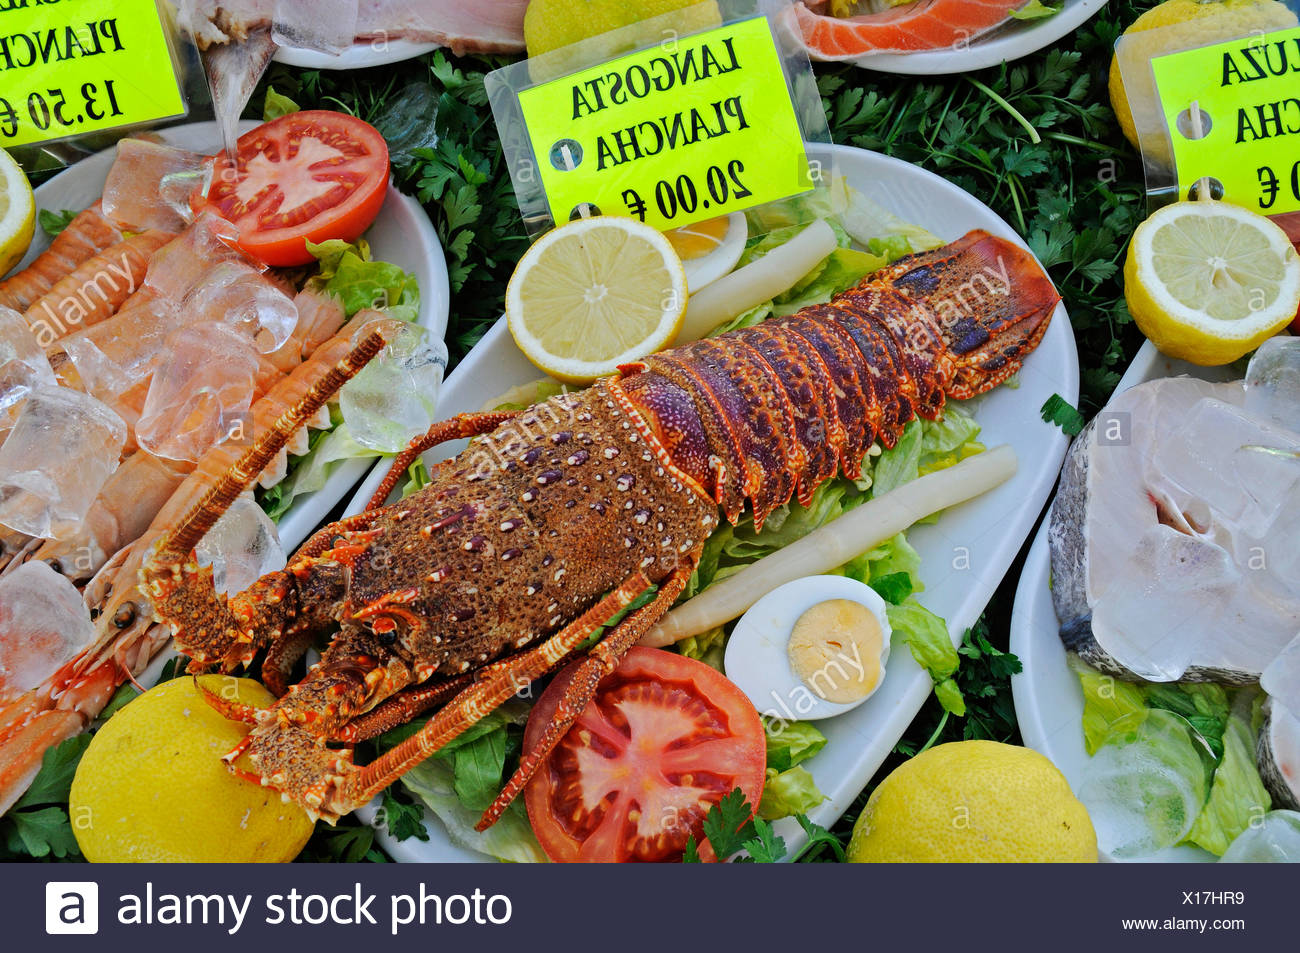 Crawfish at a seafood restaurant, Calpe, Alicante, Costa Blanca, Spain - Stock Image